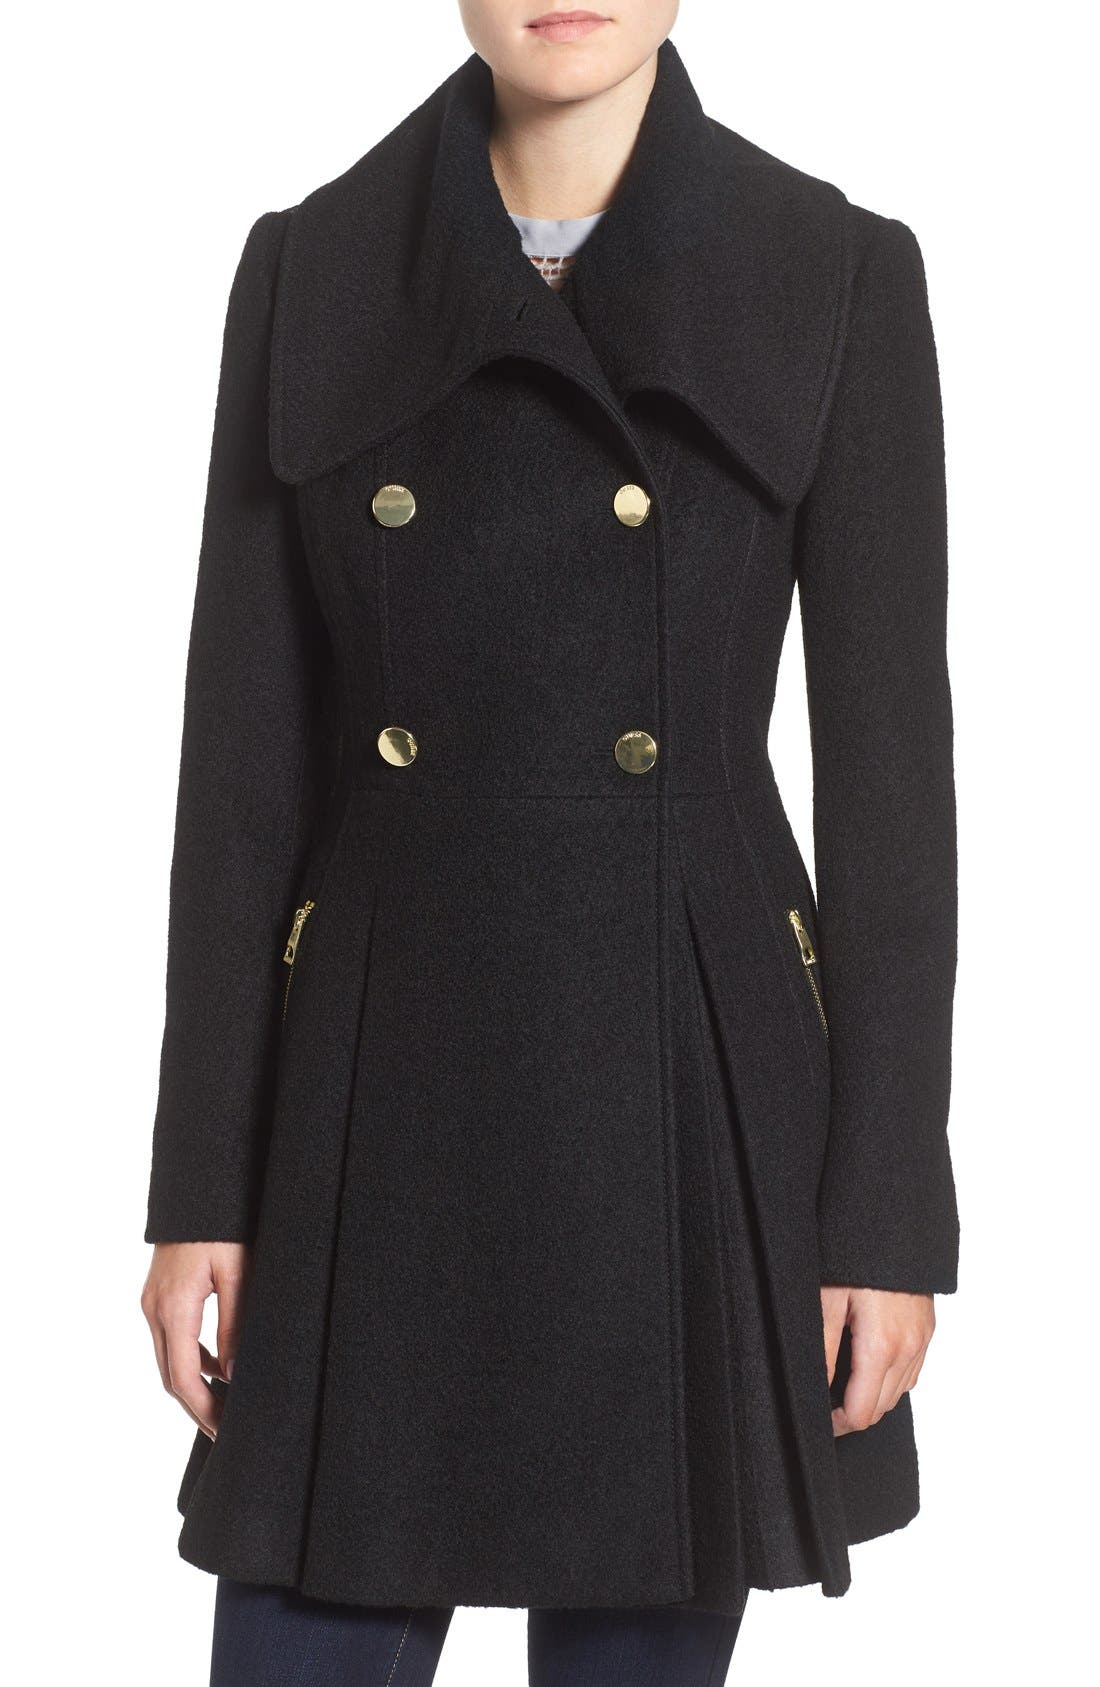 GUESS Envelope Collar Double Breasted Coat (Regular & Petite)